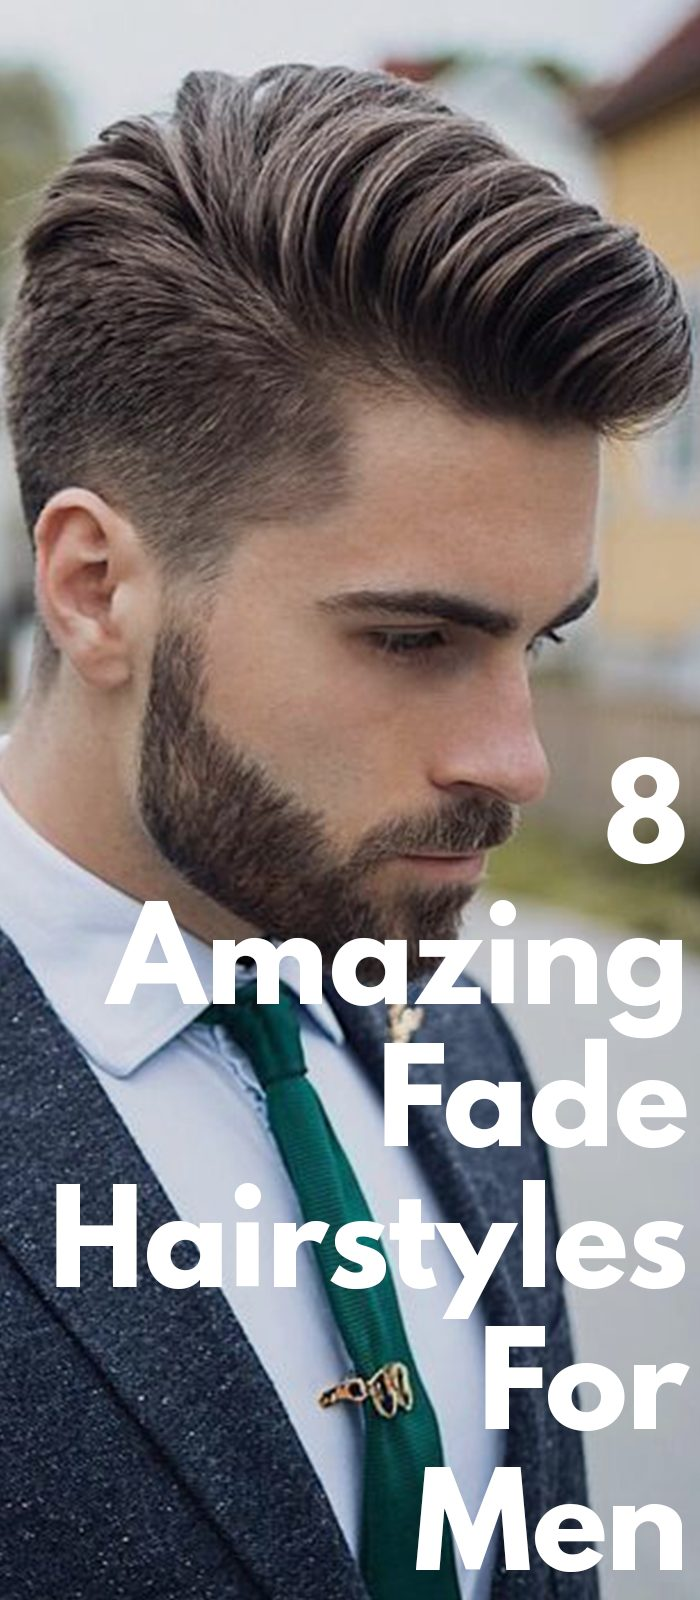 8 Amazing Fade Hairstyles For Men